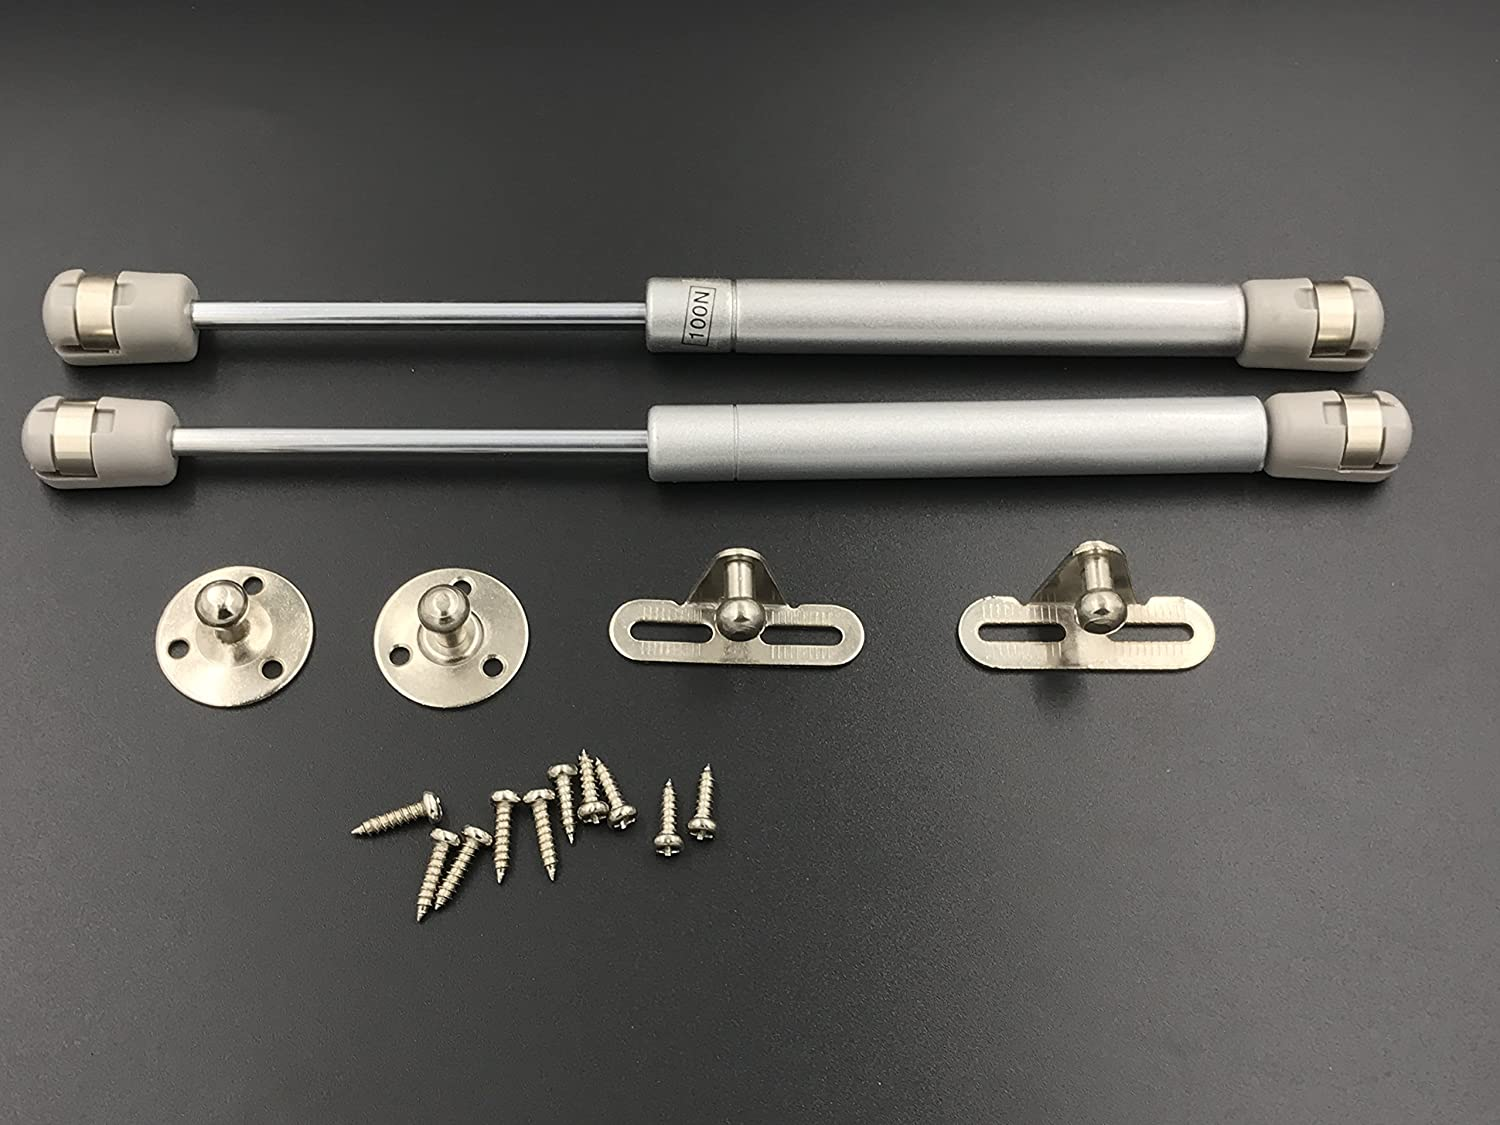 100N/22.5lb Gas Struts, Gas Springs, Gas Strut, Lift Support, Gas Shocks, Lid Stay, Lid Support